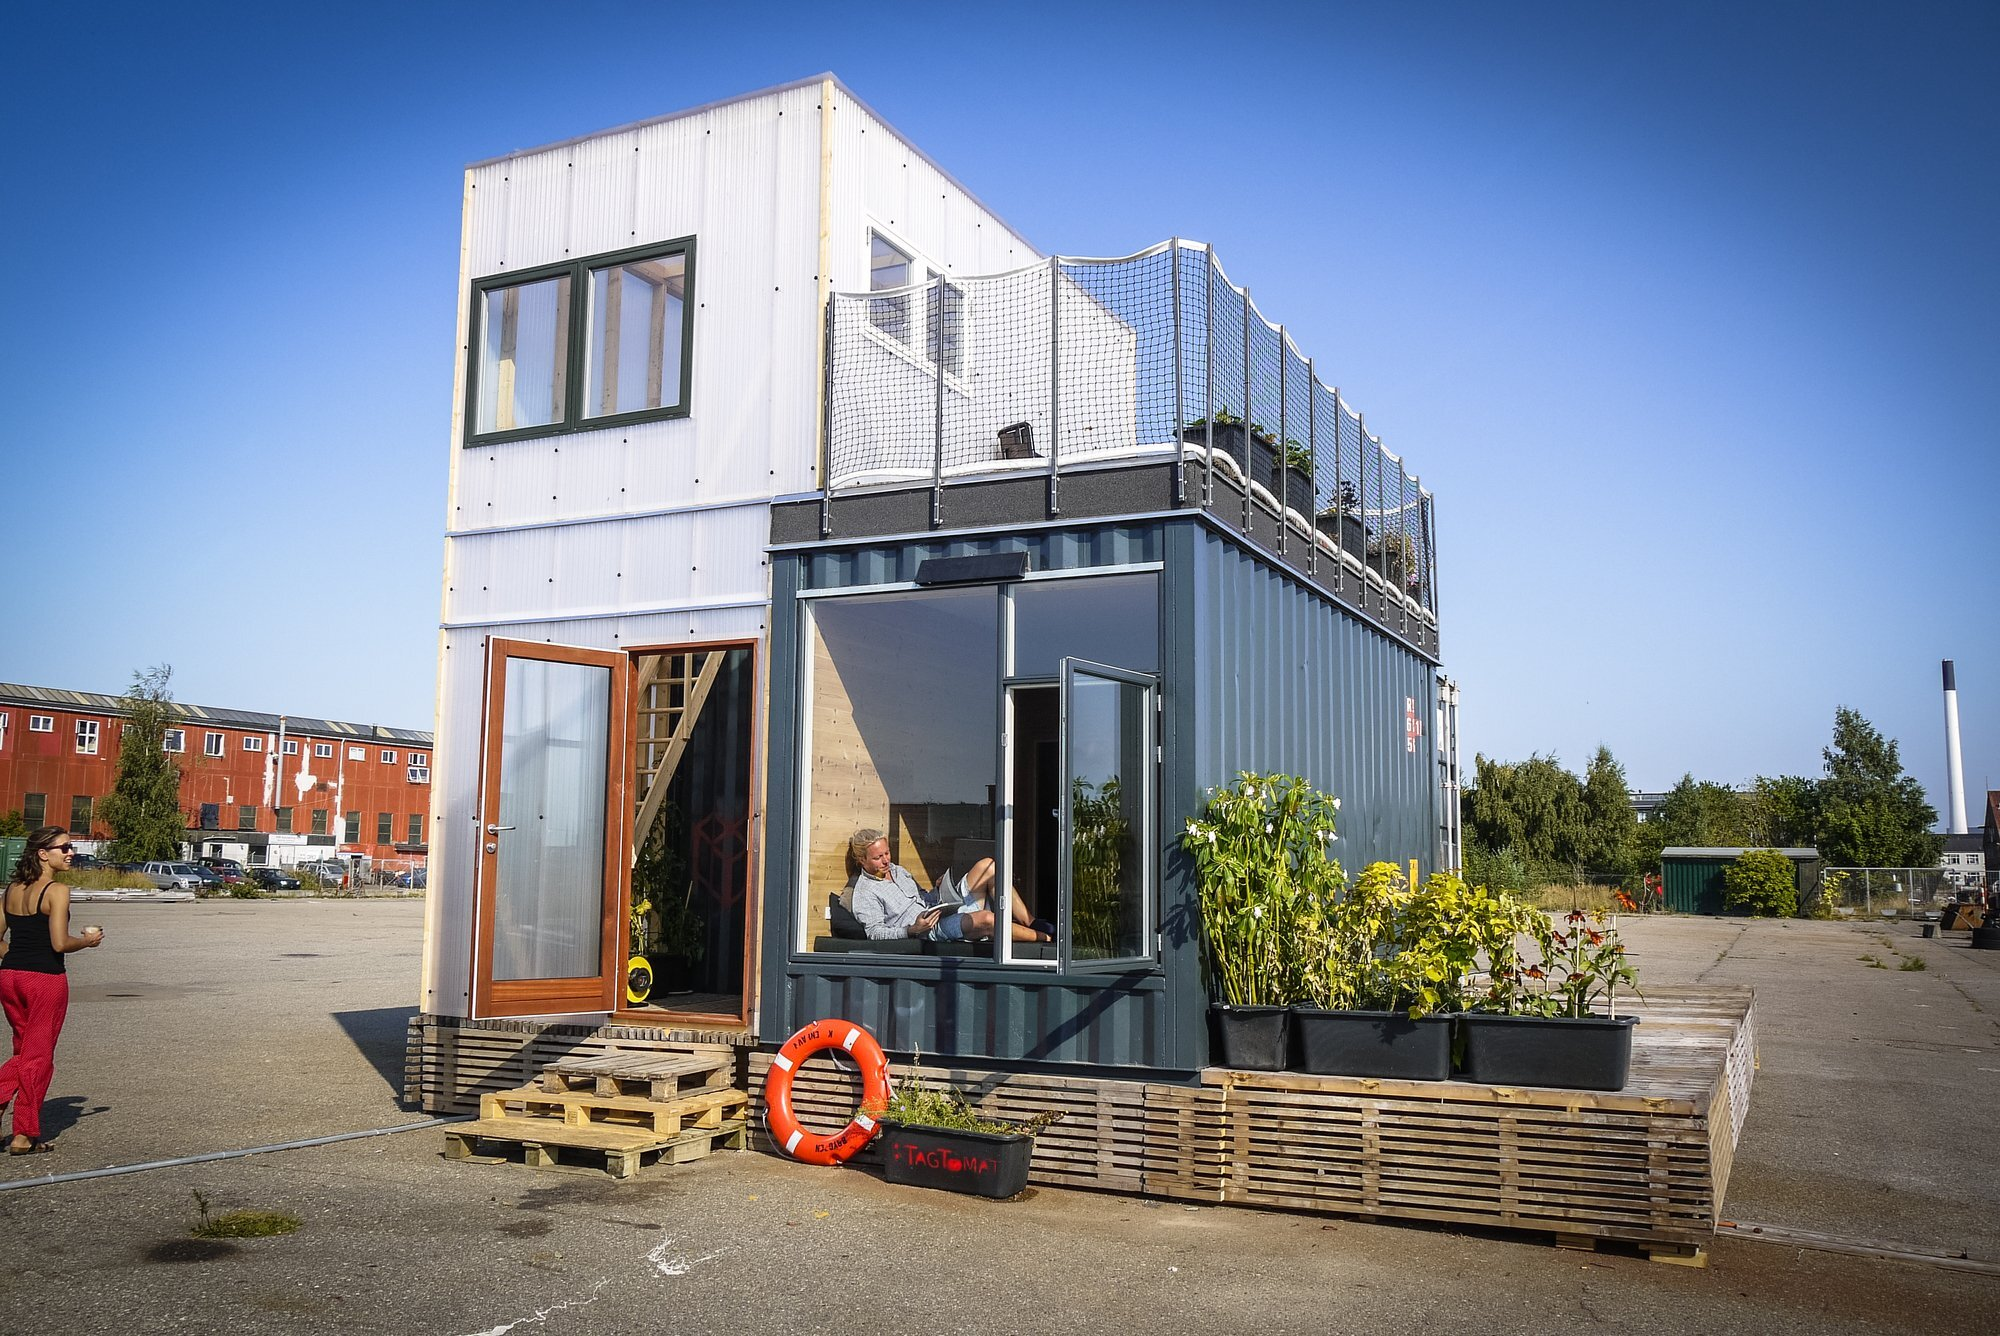 Best Kitchen Gallery: A Student Village Made Of Container Homes In Copenhagen By Cph of Containers For Homes  on rachelxblog.com